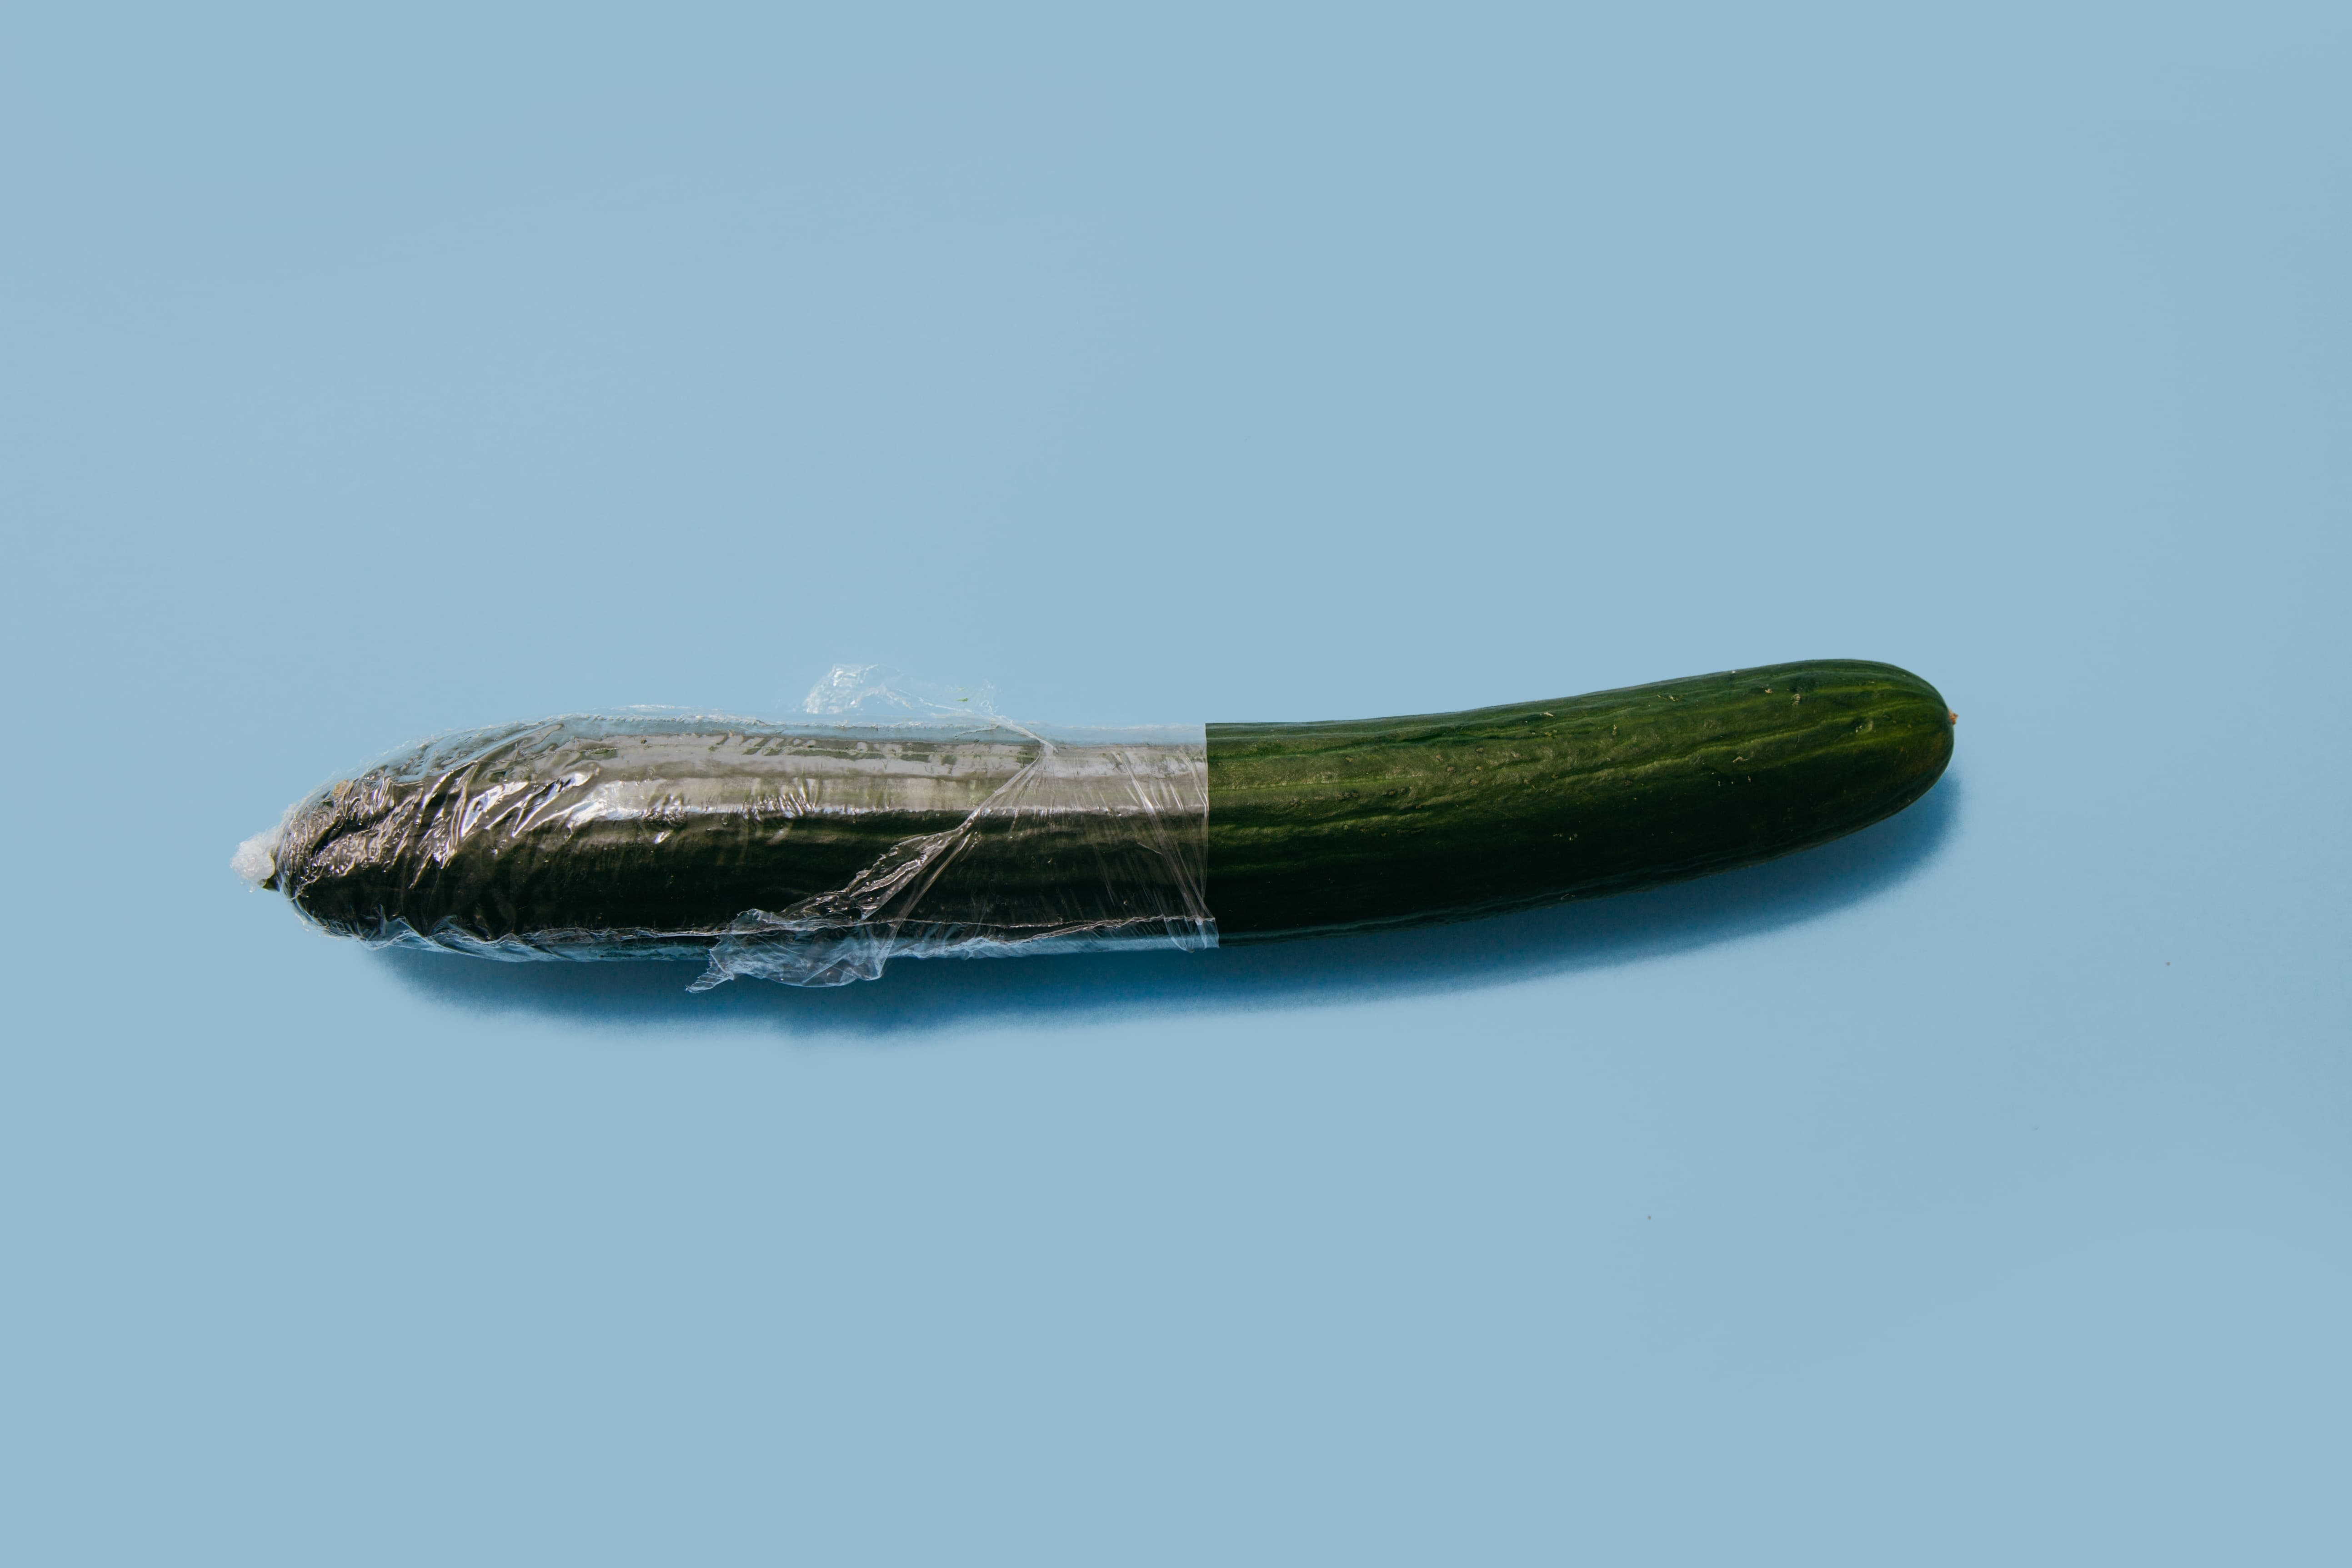 A cucumber with a condom